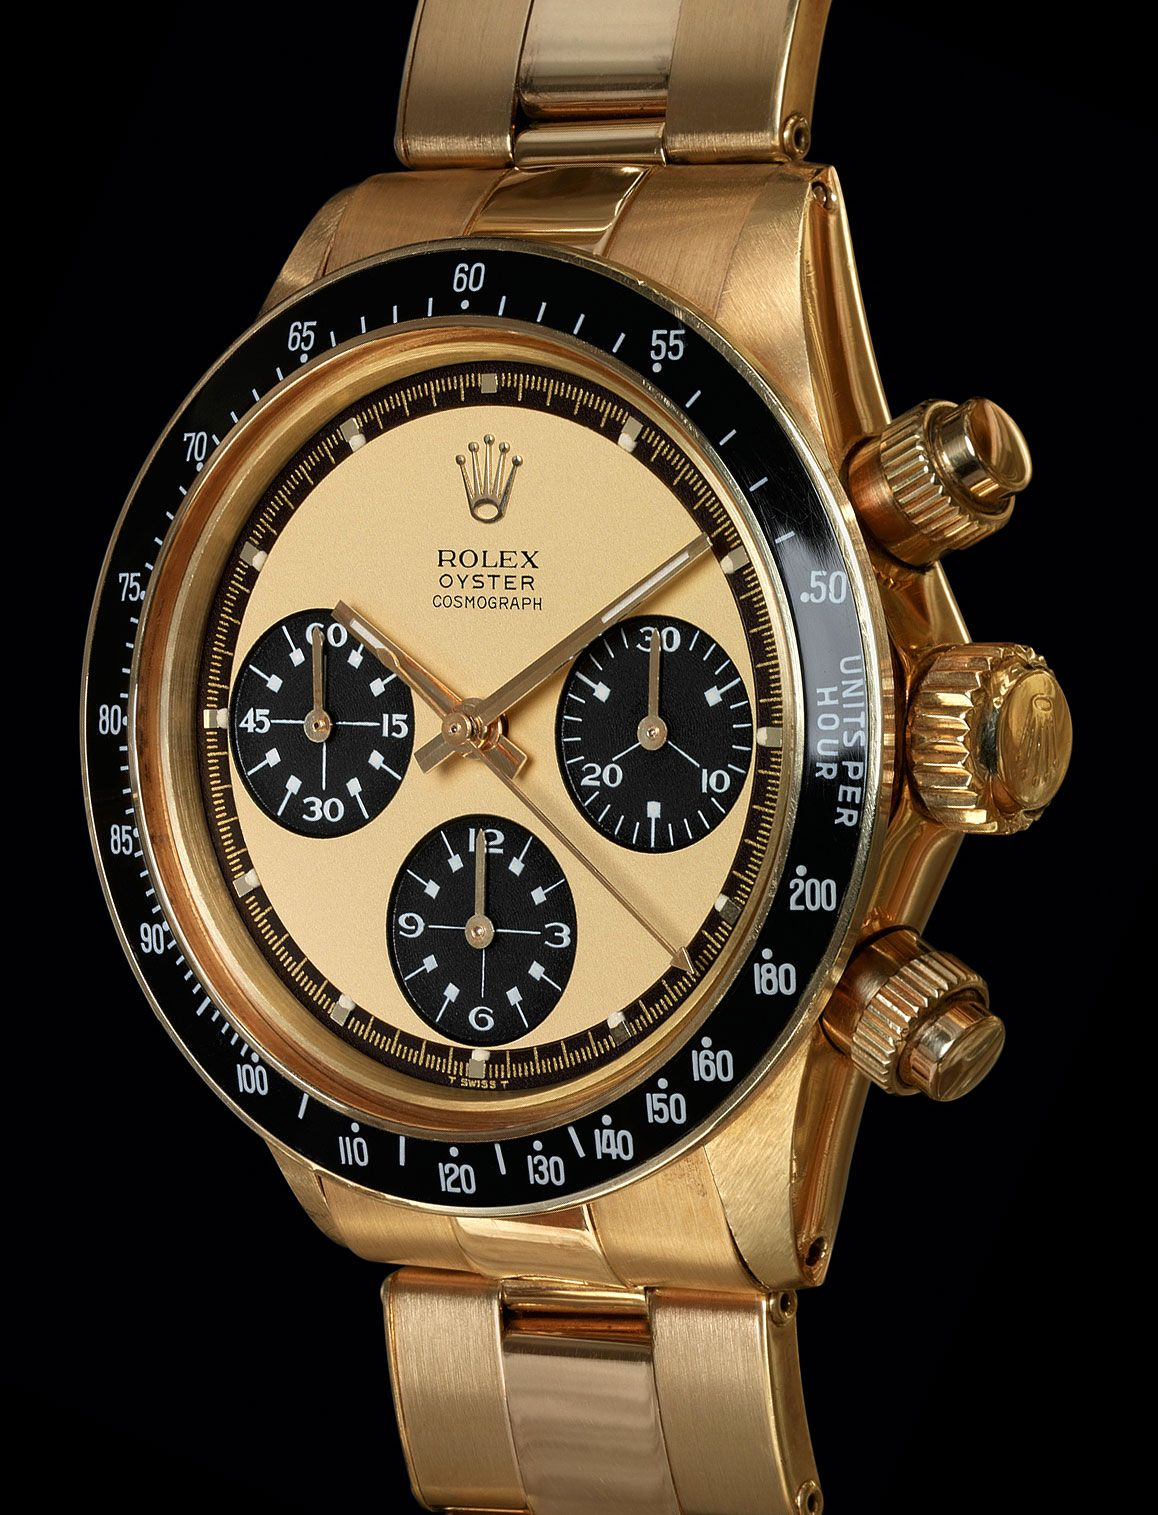 Rolex Yellow Gold Cosmograph Daytona Reference 6263   High Livers ...